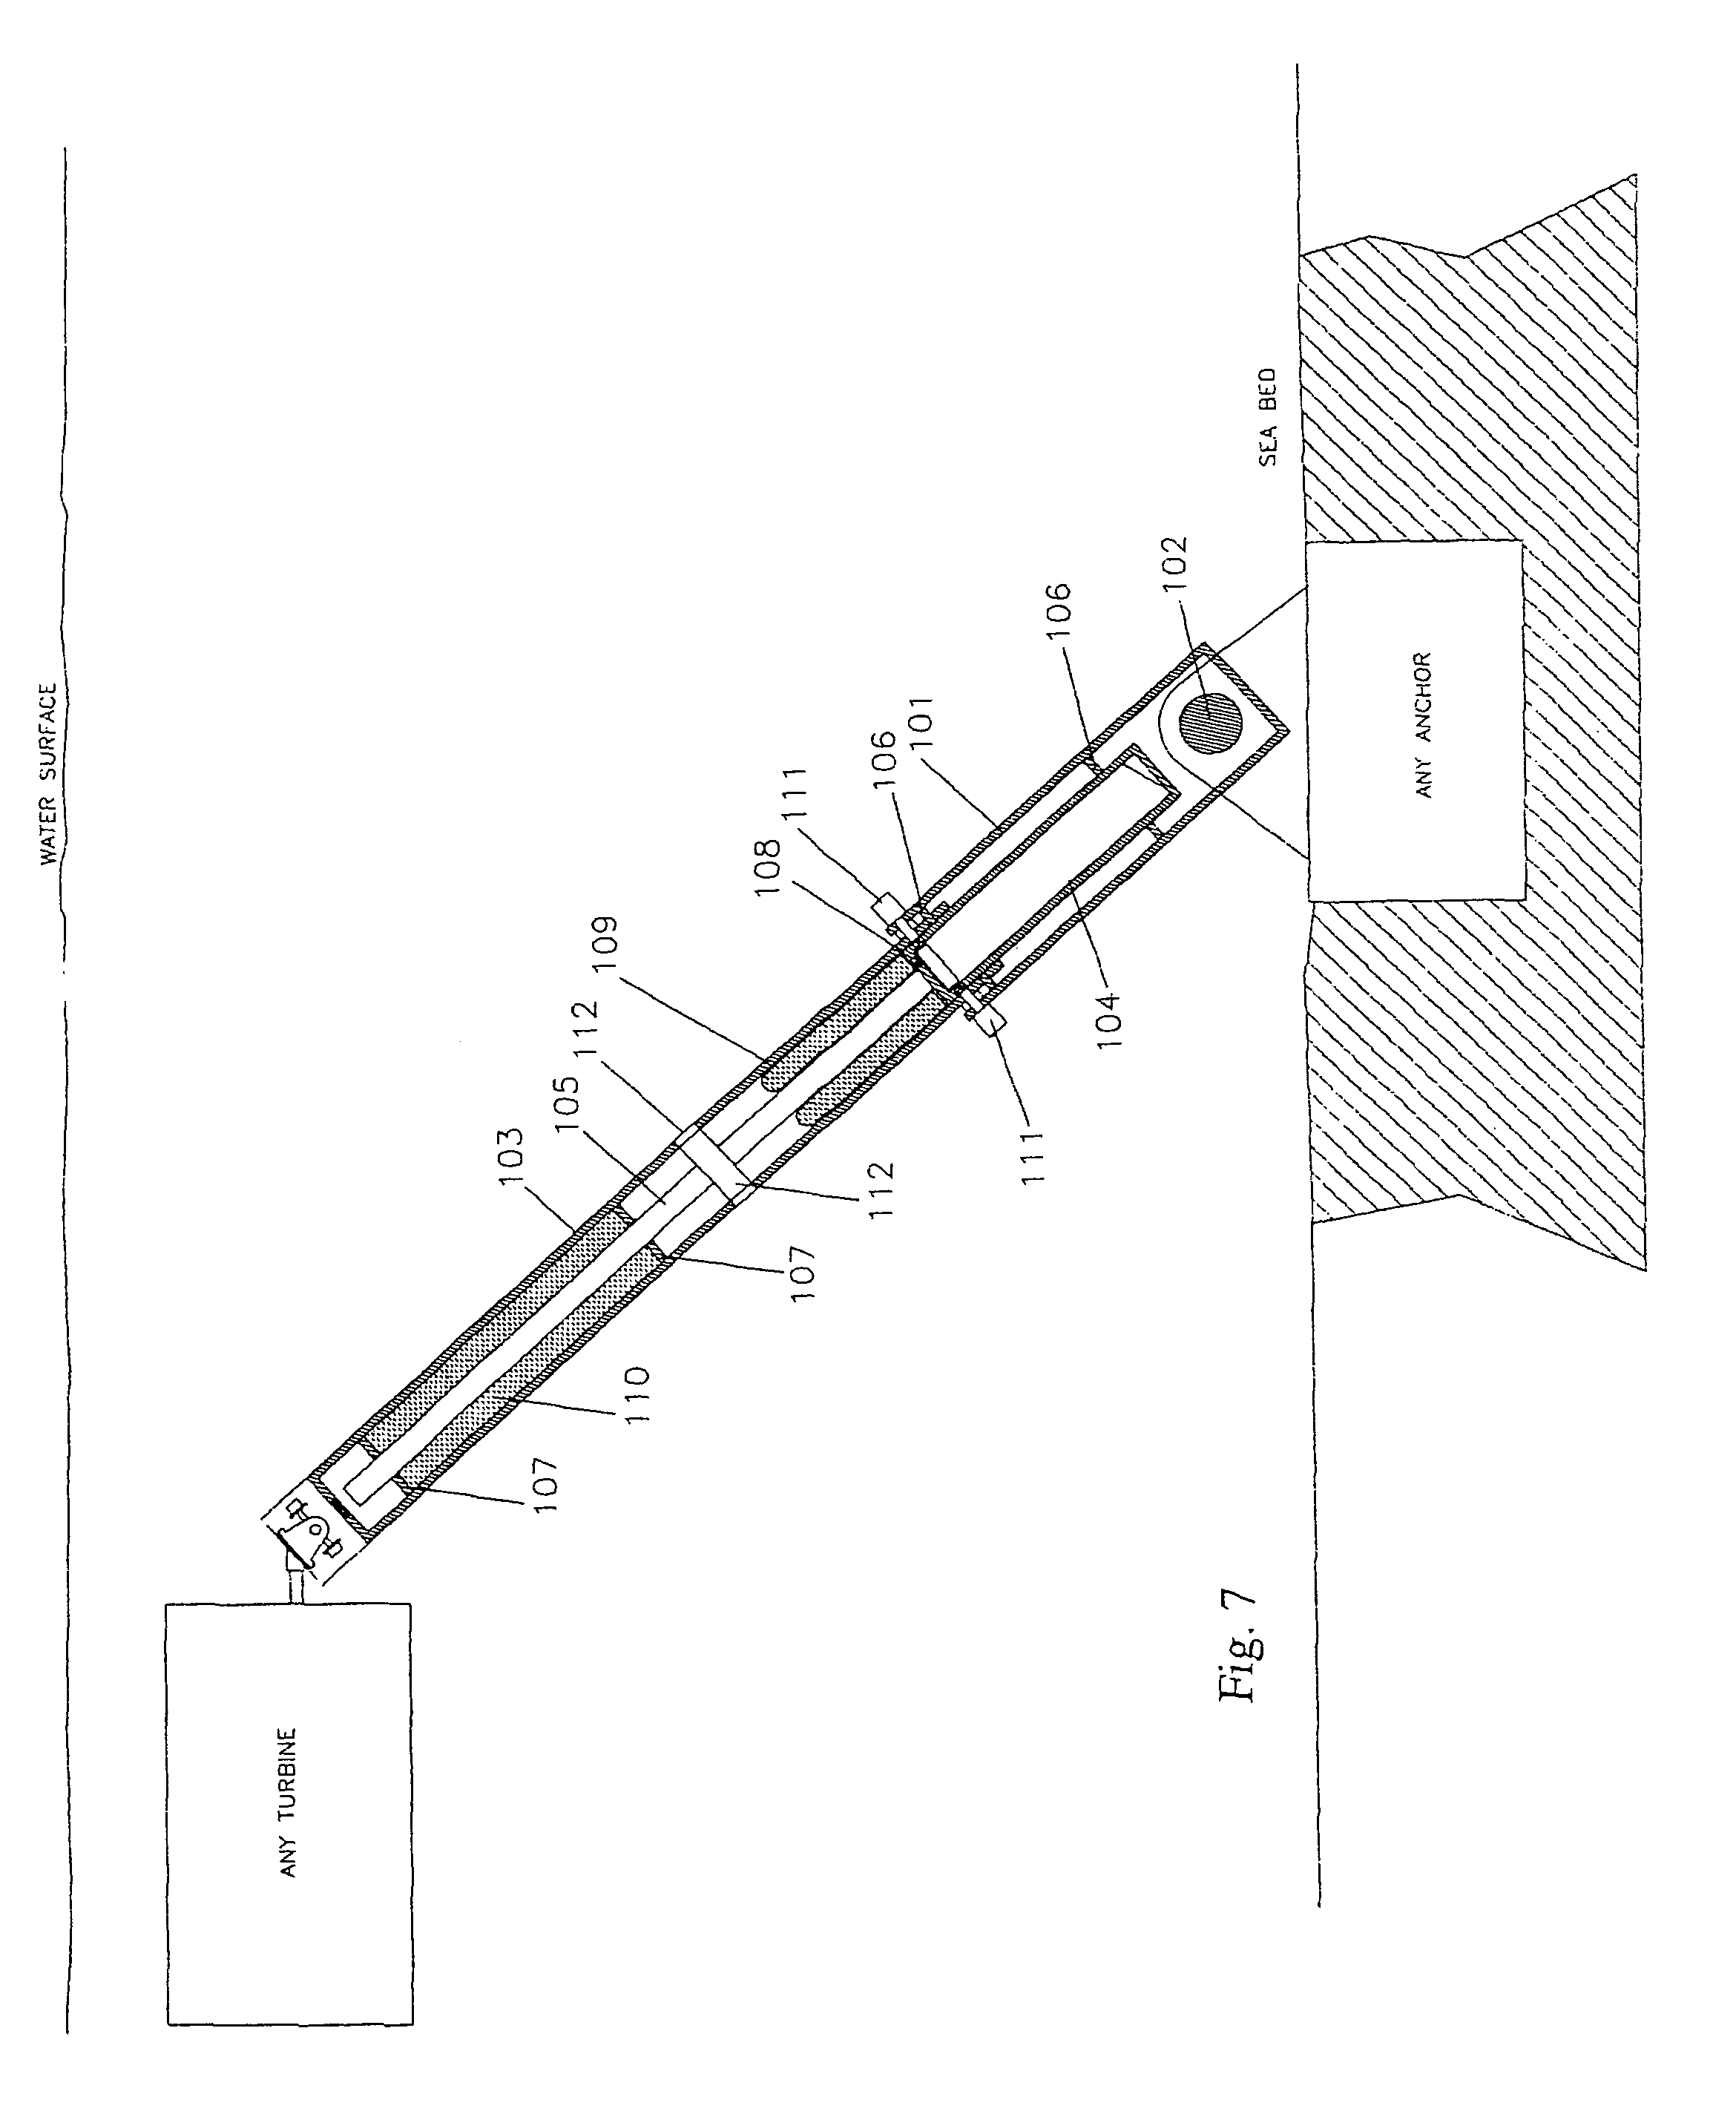 Patent US8310079 - Tidal energy system - Google Patents